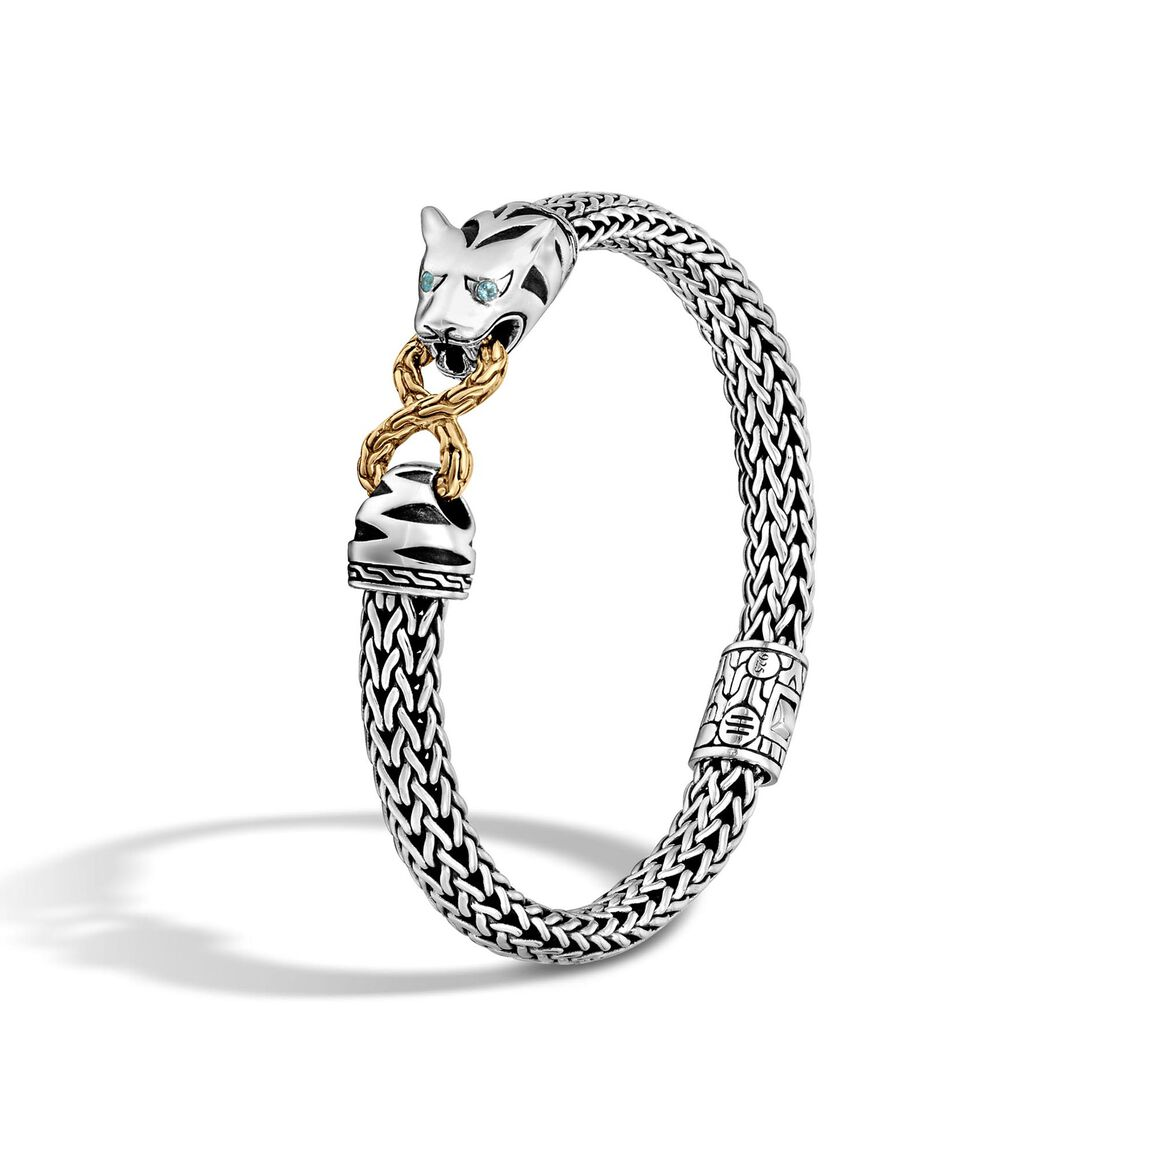 Legends Macan 6.5MM Station Bracelet in Silver and 18K Gold